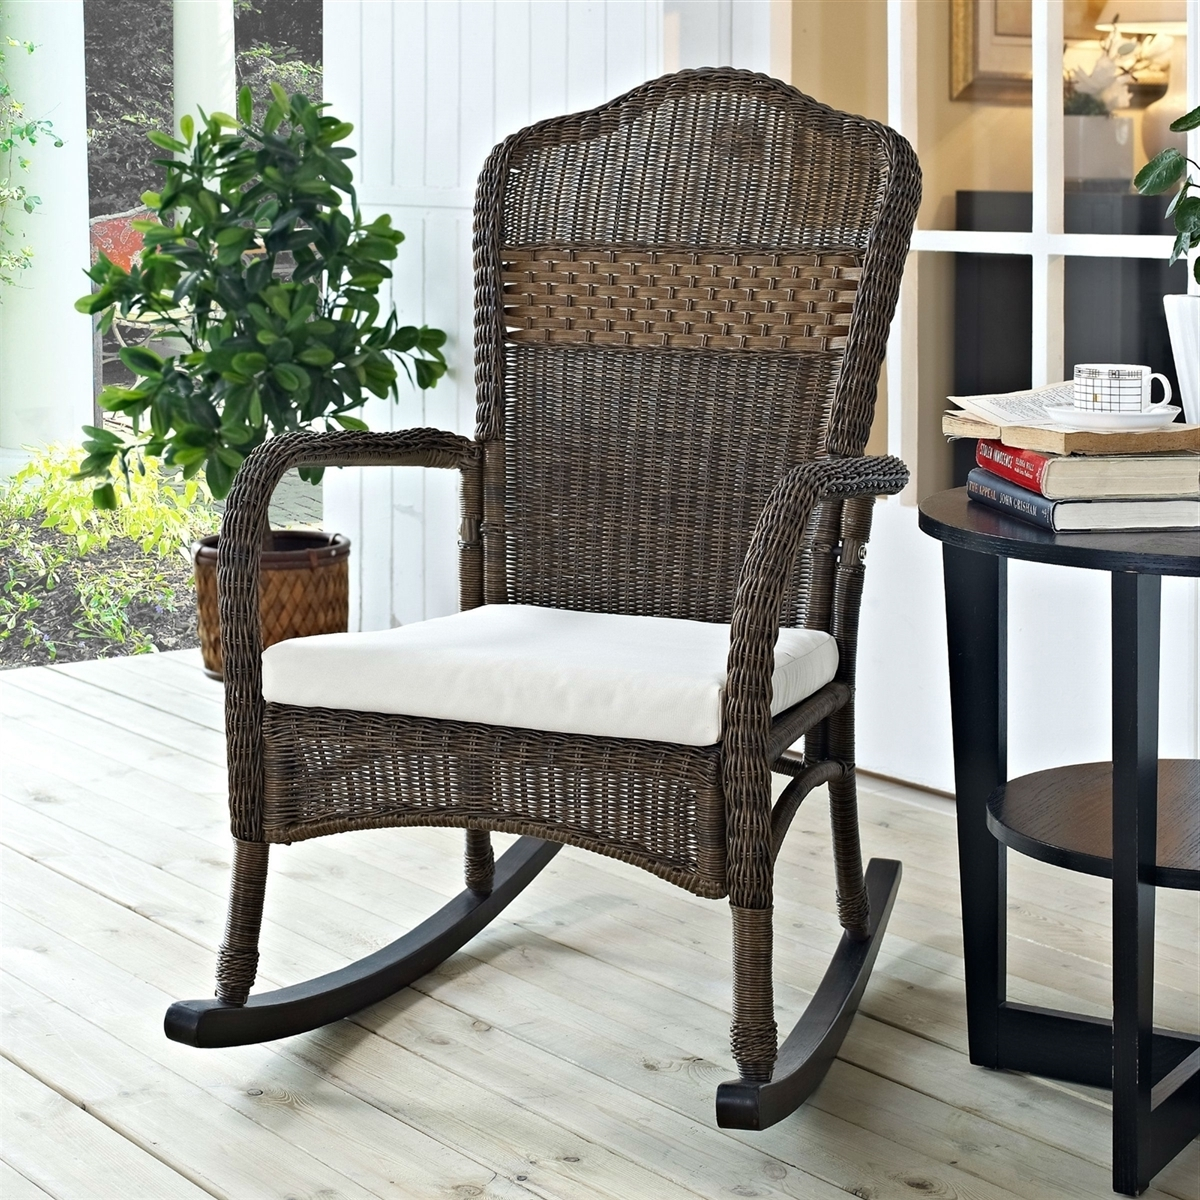 Best And Newest Resin Wicker Patio Rocking Chairs Within Wicker Patio Furniture Rocking Chair Mocha With Beige Cushion (View 3 of 15)